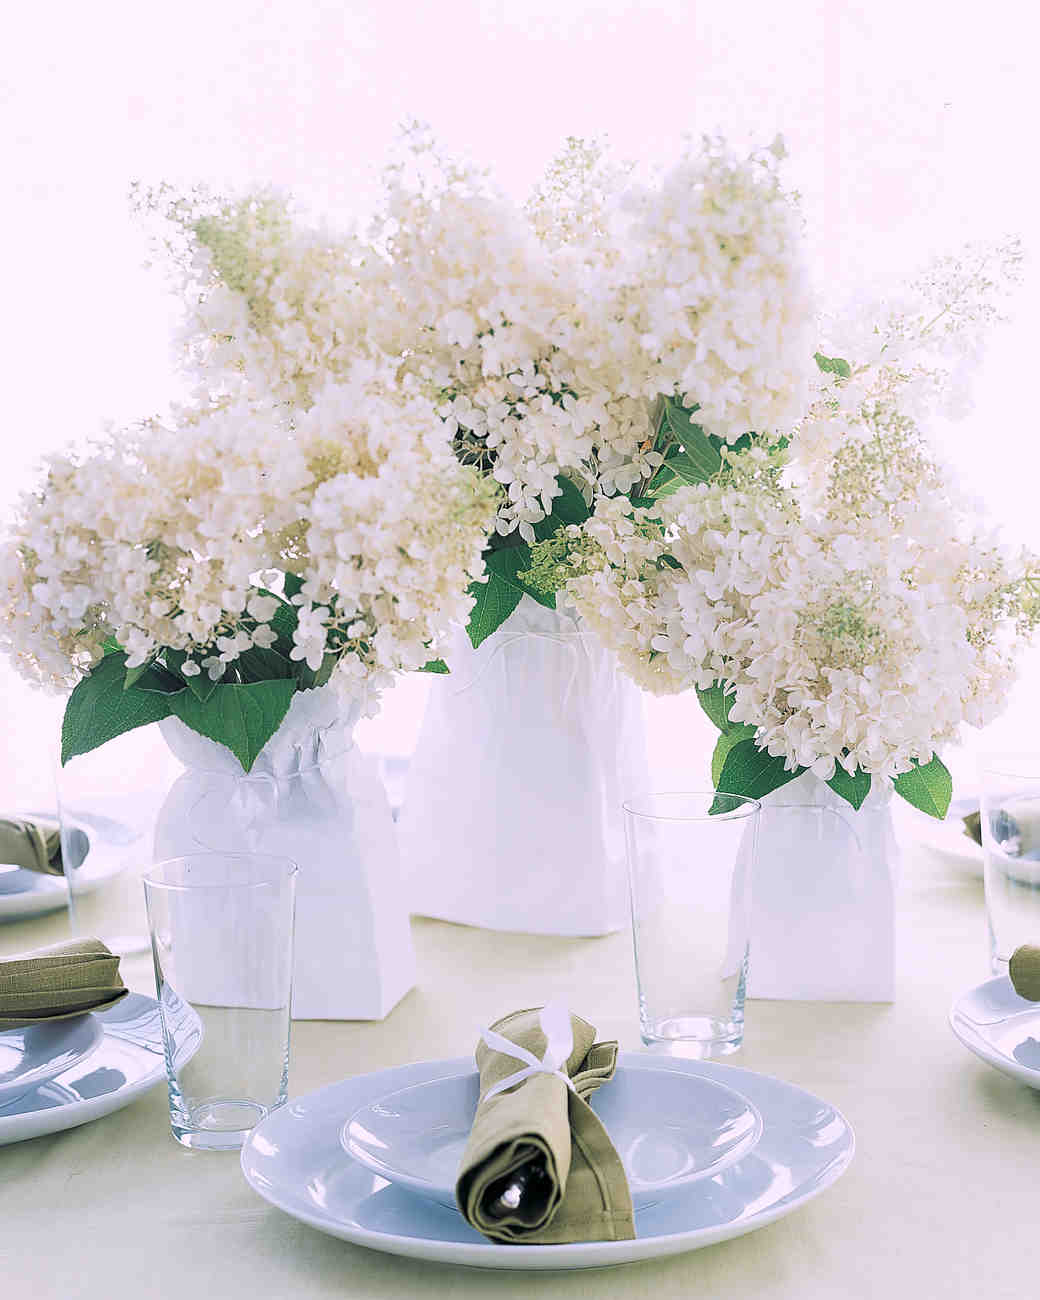 18 Diy Wedding Decorations On A Budget: Affordable Wedding Centerpieces That Don't Look Cheap